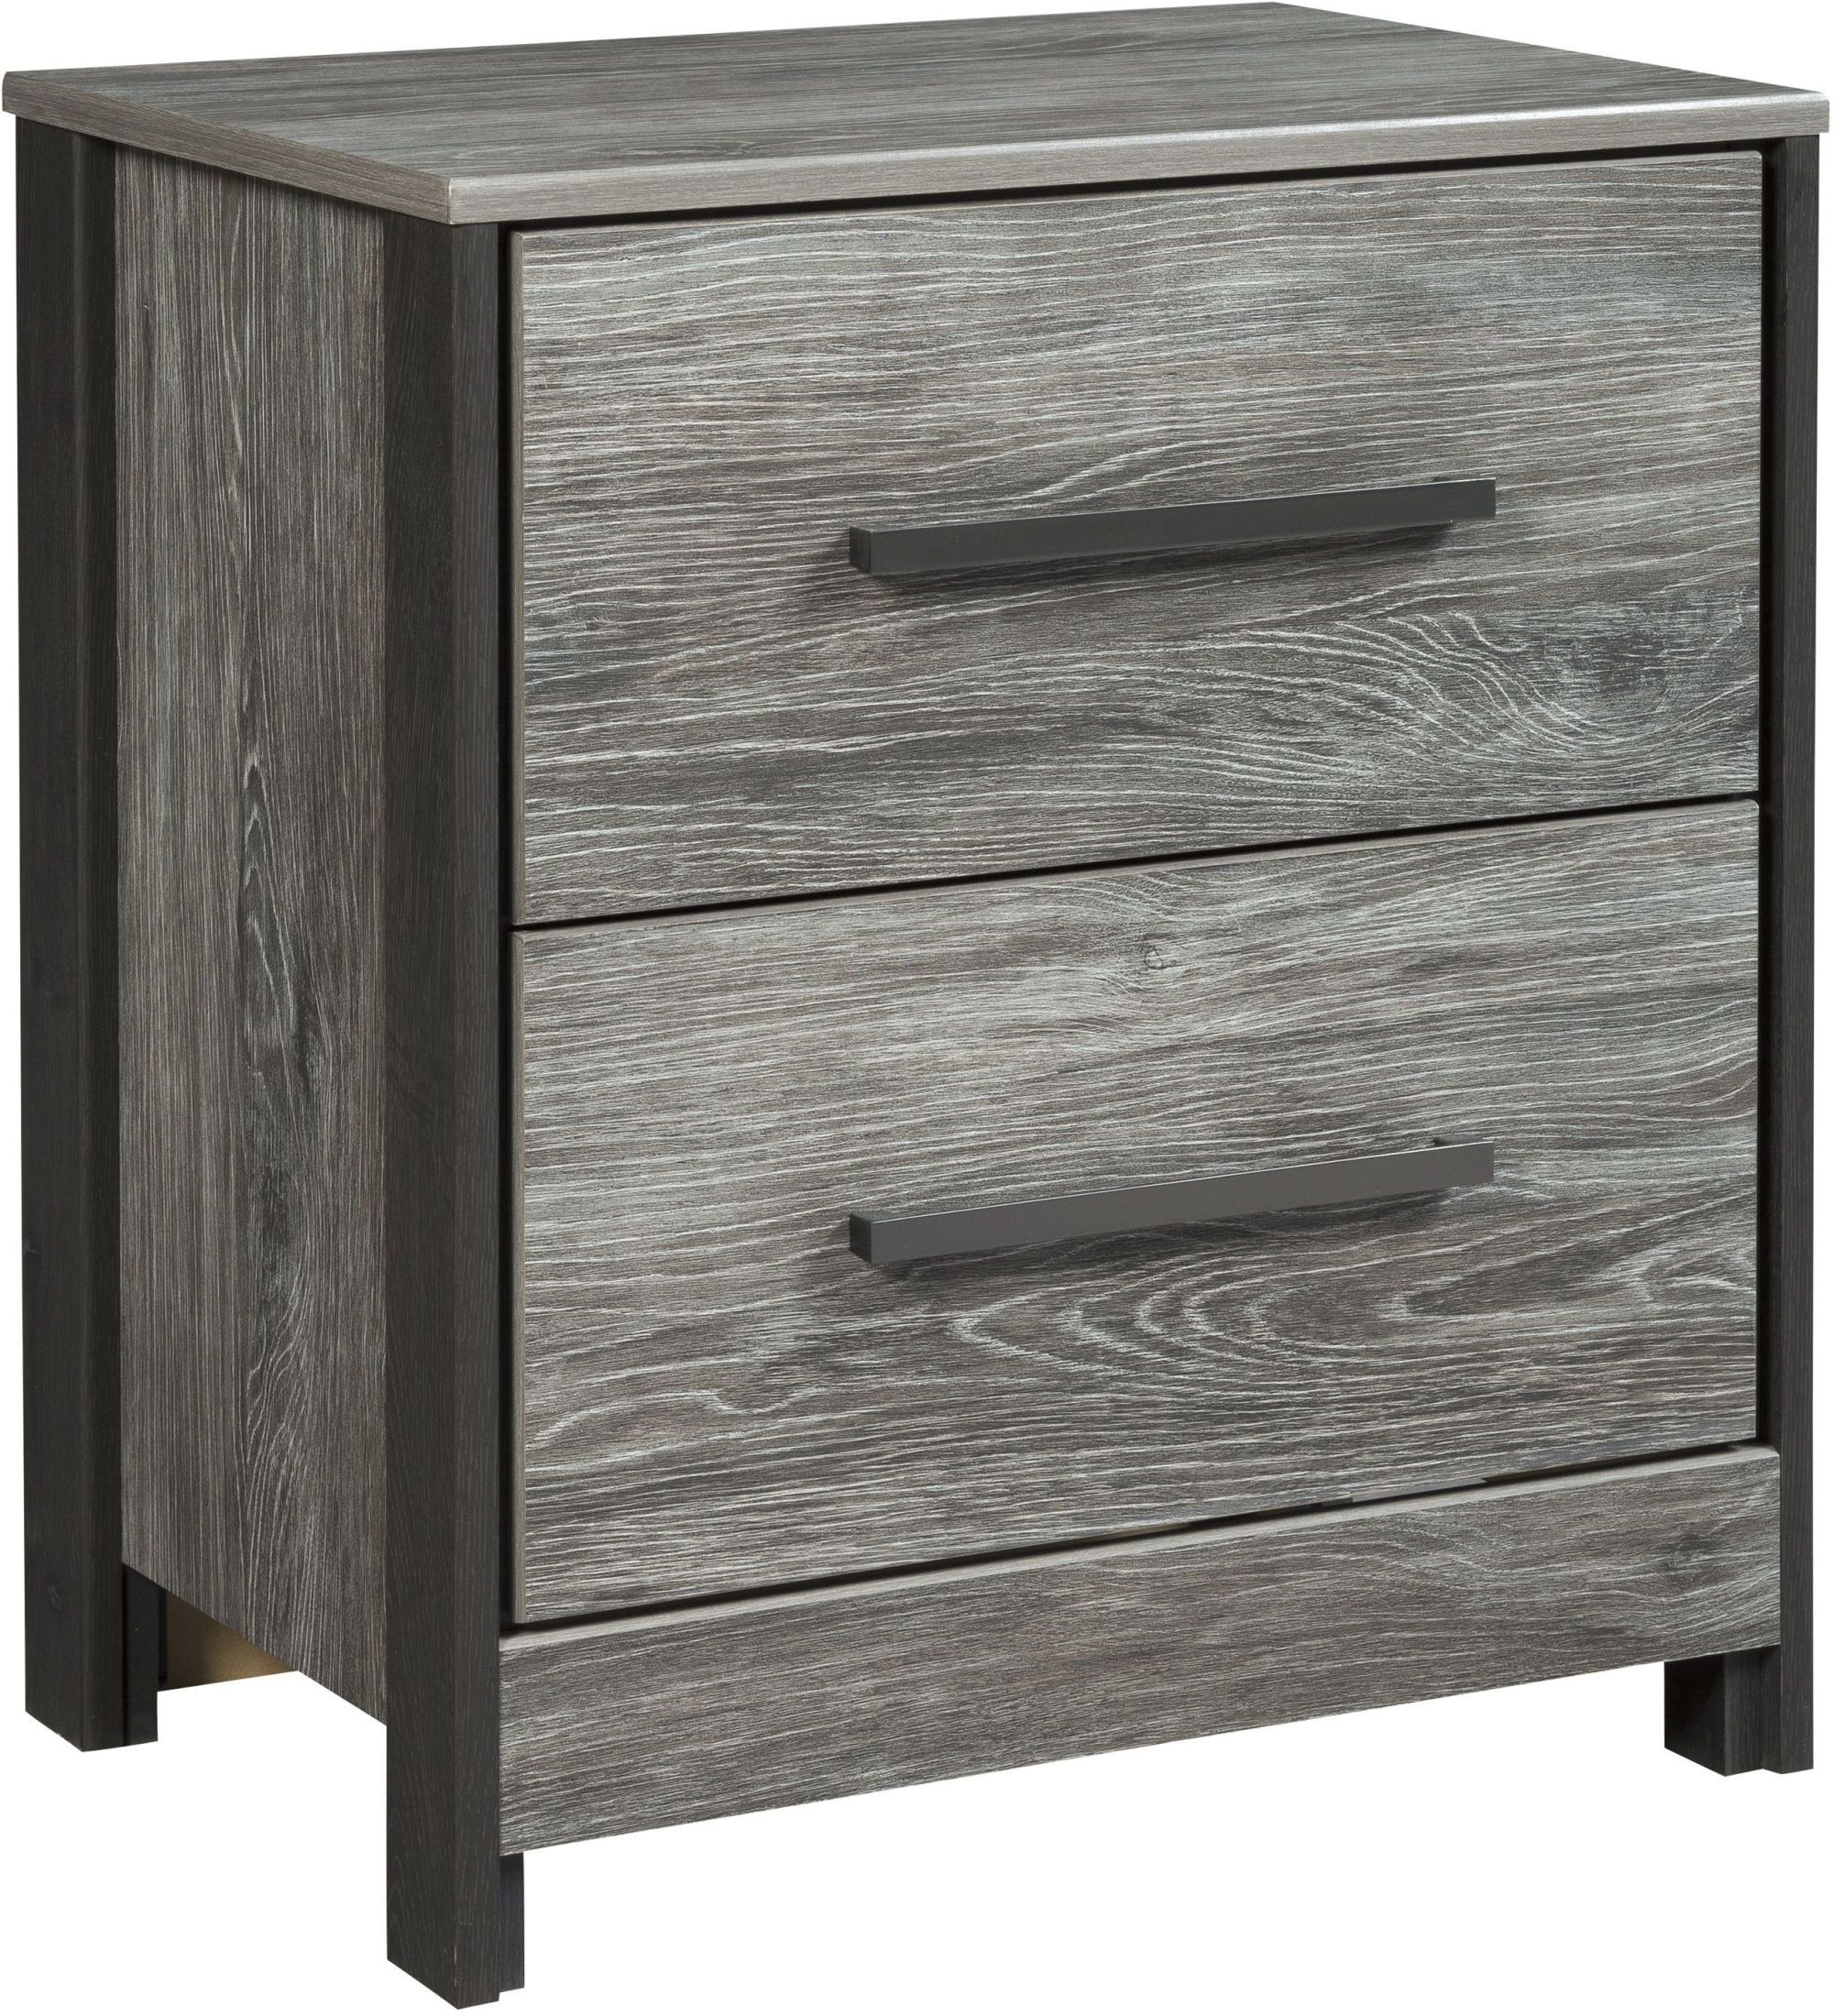 Cazenfeld Black And Gray Dresser: Cazenfeld Black And Gray Two Drawer Nightstand From Ashley